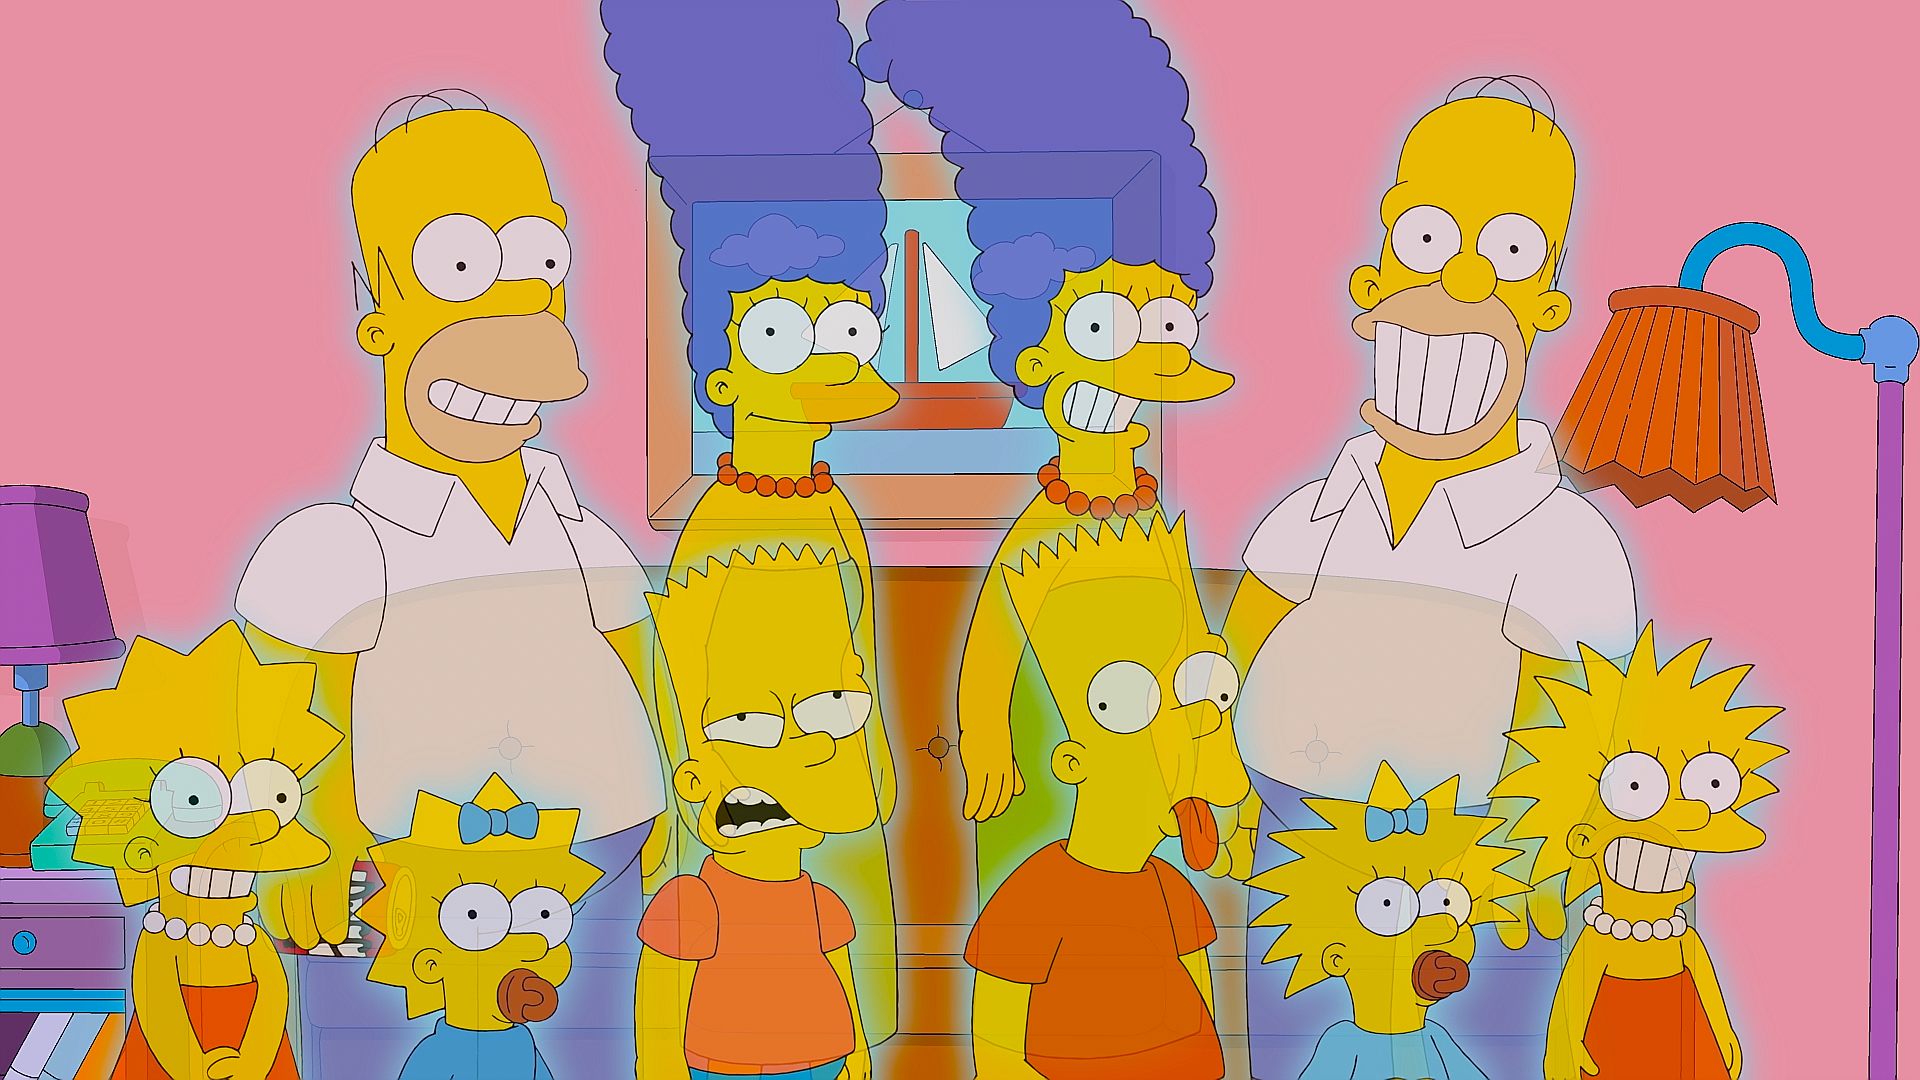 http://vignette4.wikia.nocookie.net/simpsons/images/6/6f/Treehouse_of_Horror_XXV_-00053.png/revision/latest?cb=20150125210520